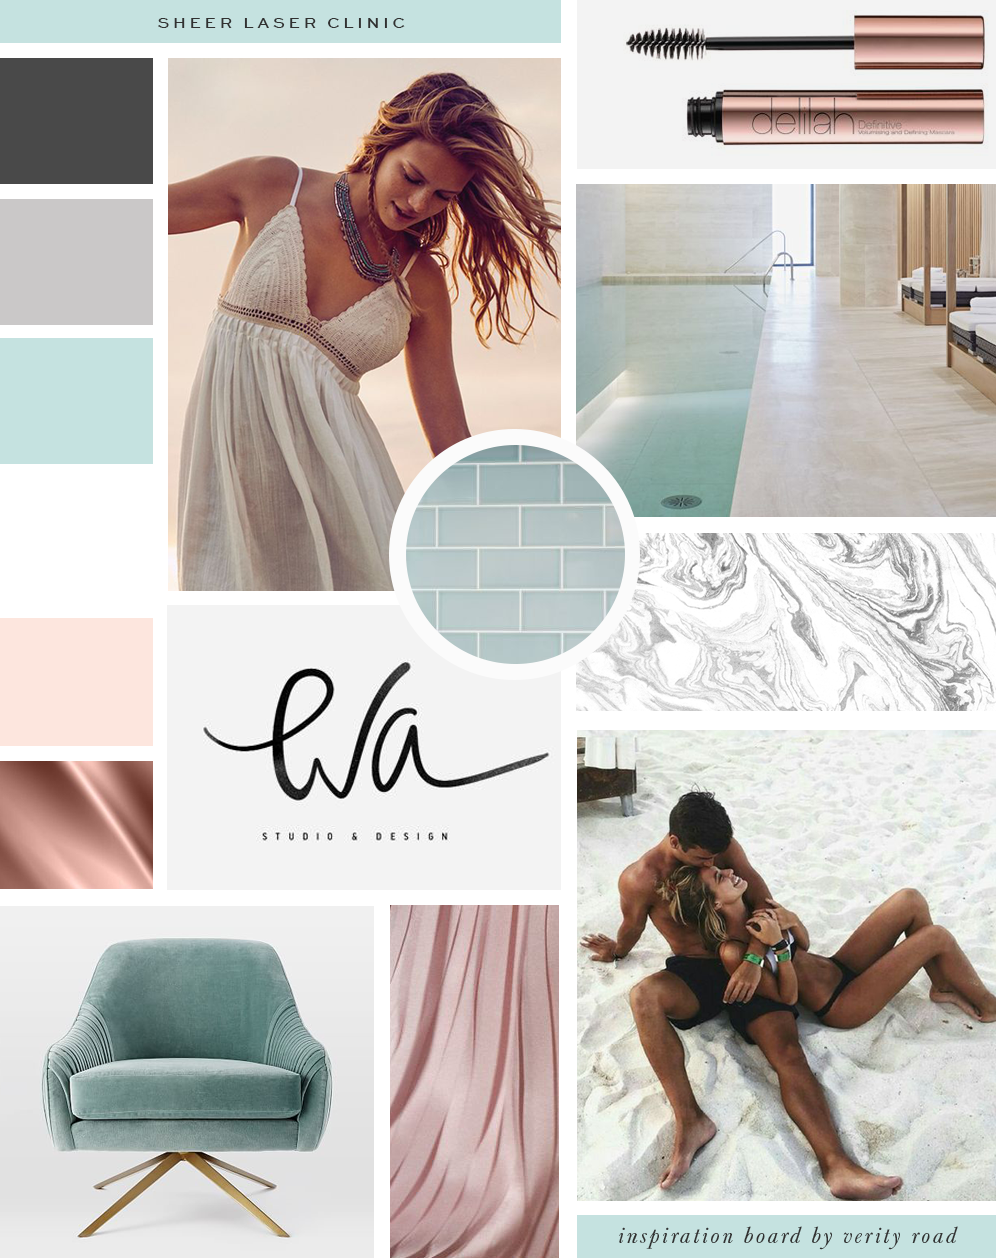 Mood board for Sheer Laser Clinic, luxury branding, brand styling. Beauty salon branding, feminine branding, feminine business, business branding, brand board. Feminine light color palette, inspiration board of typography, script font, soft textures, nail salon branding, beauty branding, spa branding, business owner, office, workspace, photoshoot, brand photoshoot. See more for brand board, social media branding and print design.